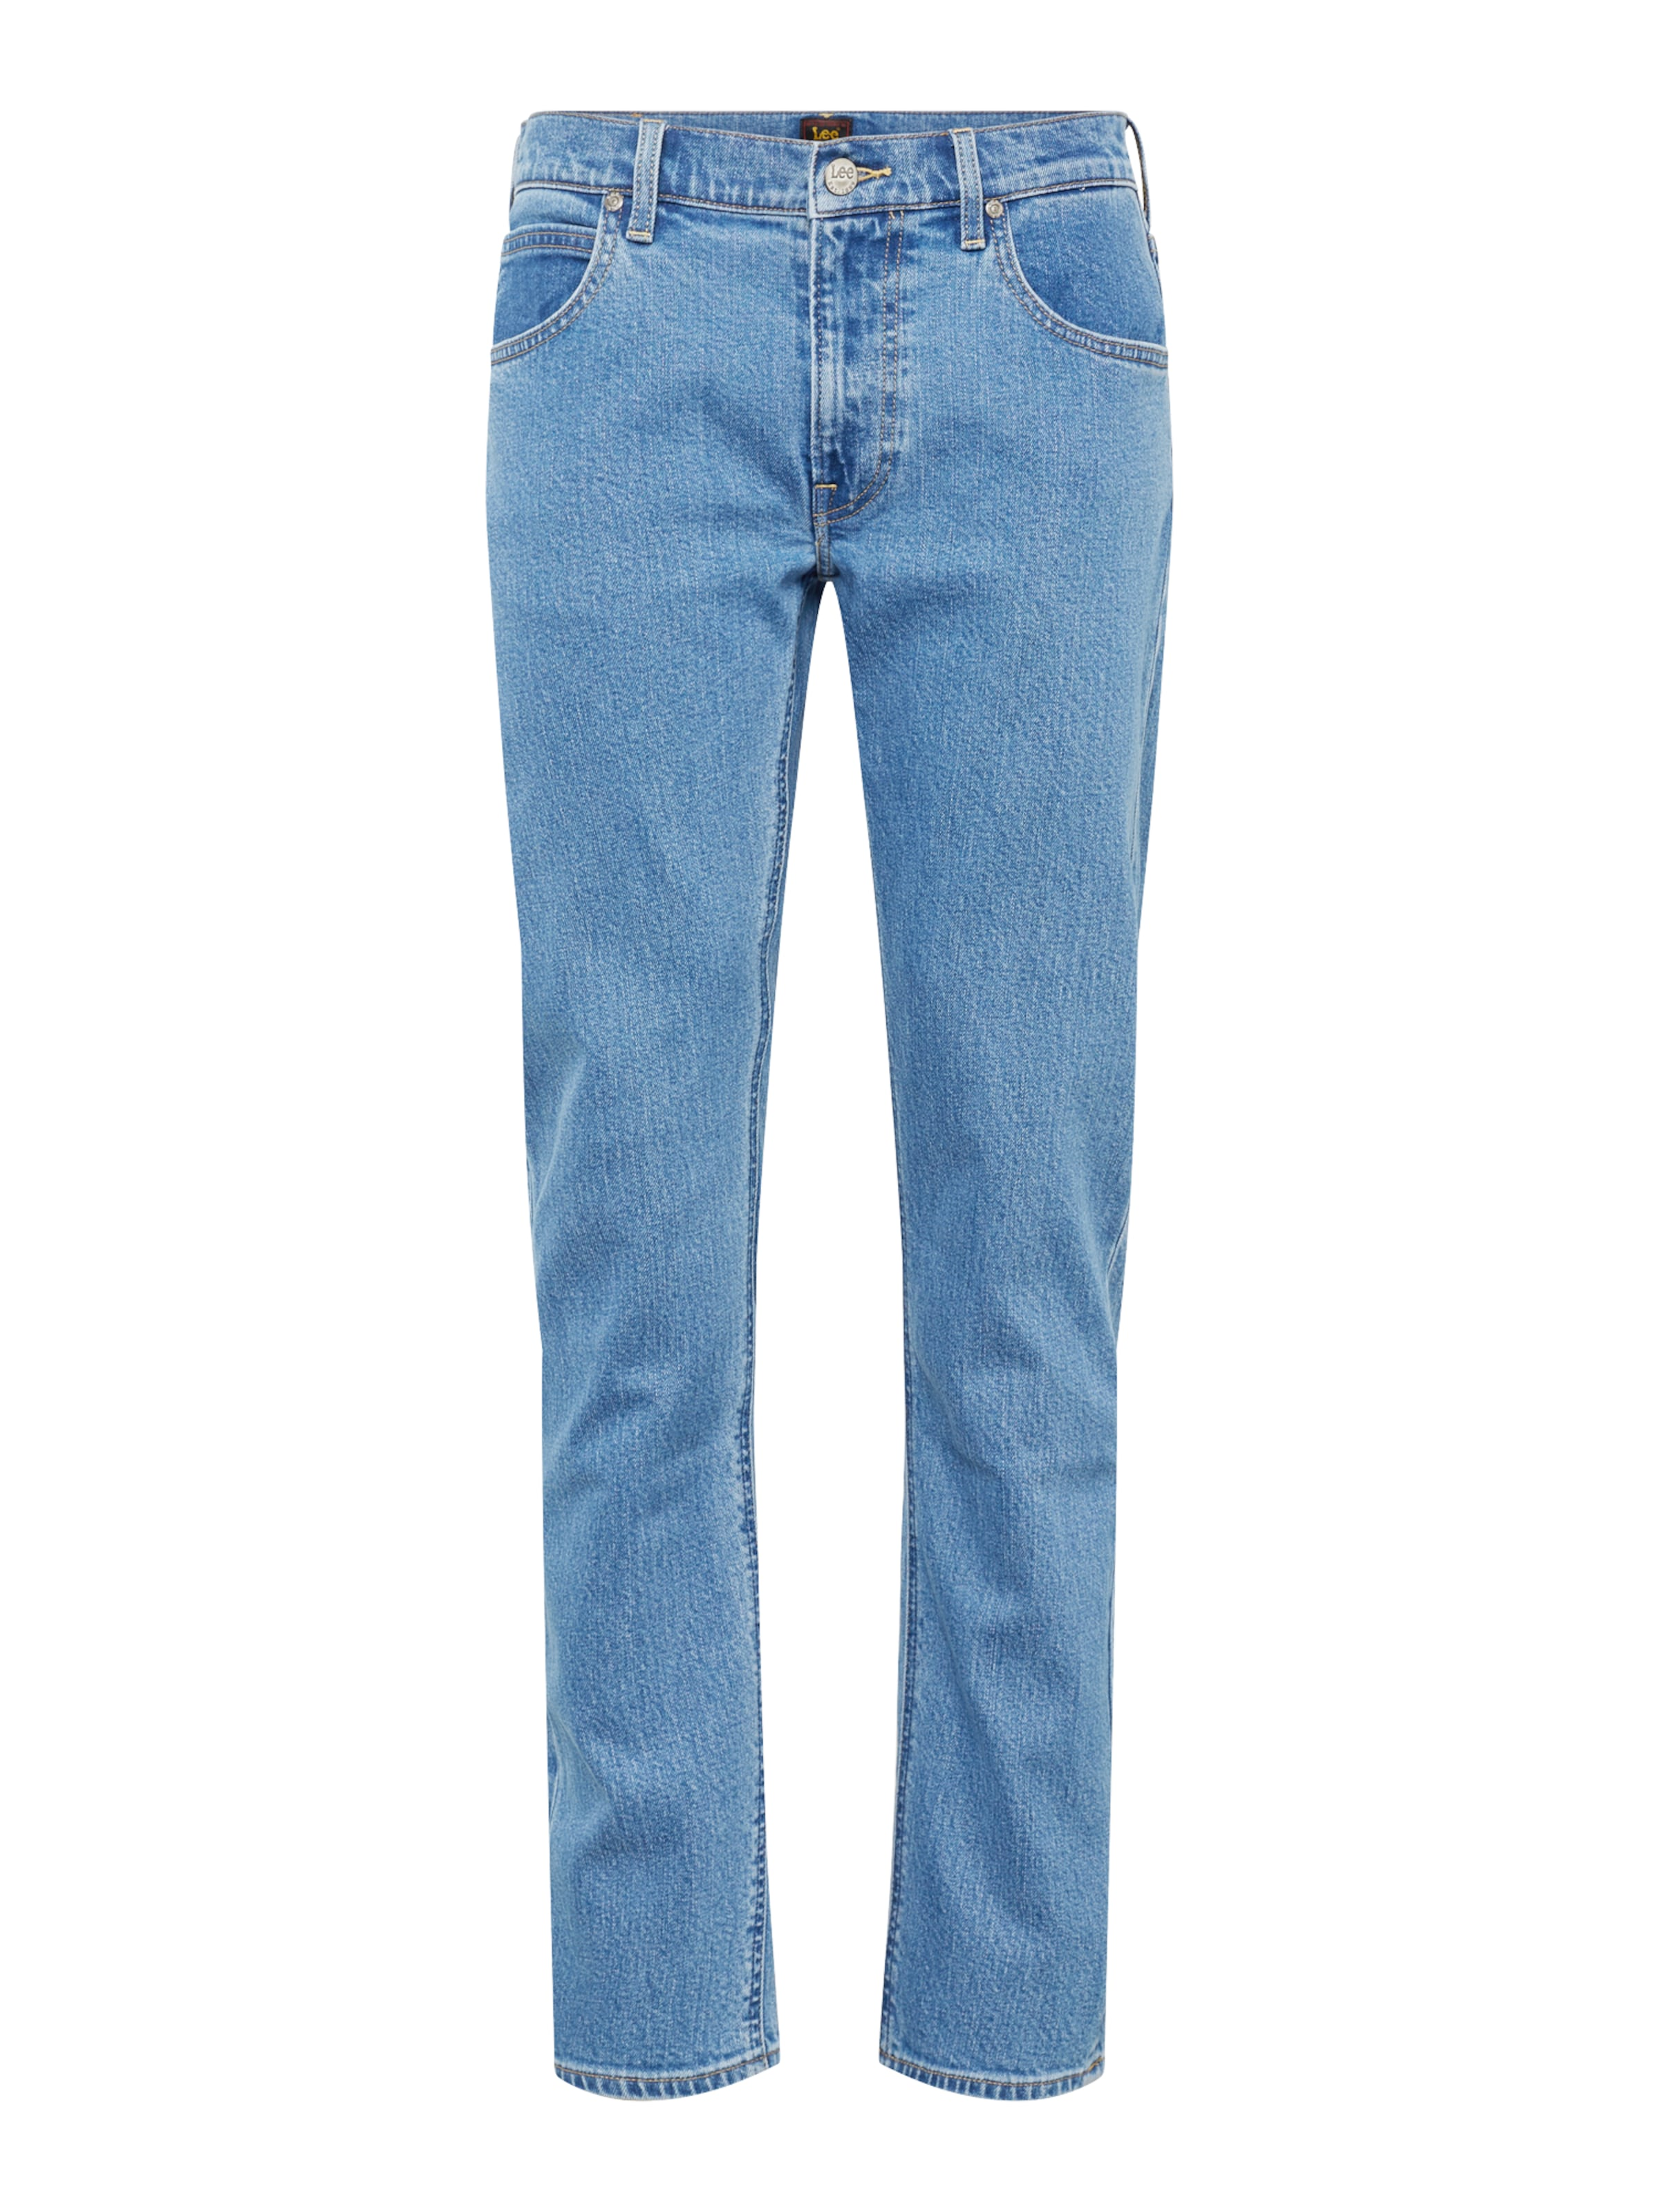 Jean Denim 'daren' Bleu En Lee 0mvnN8w